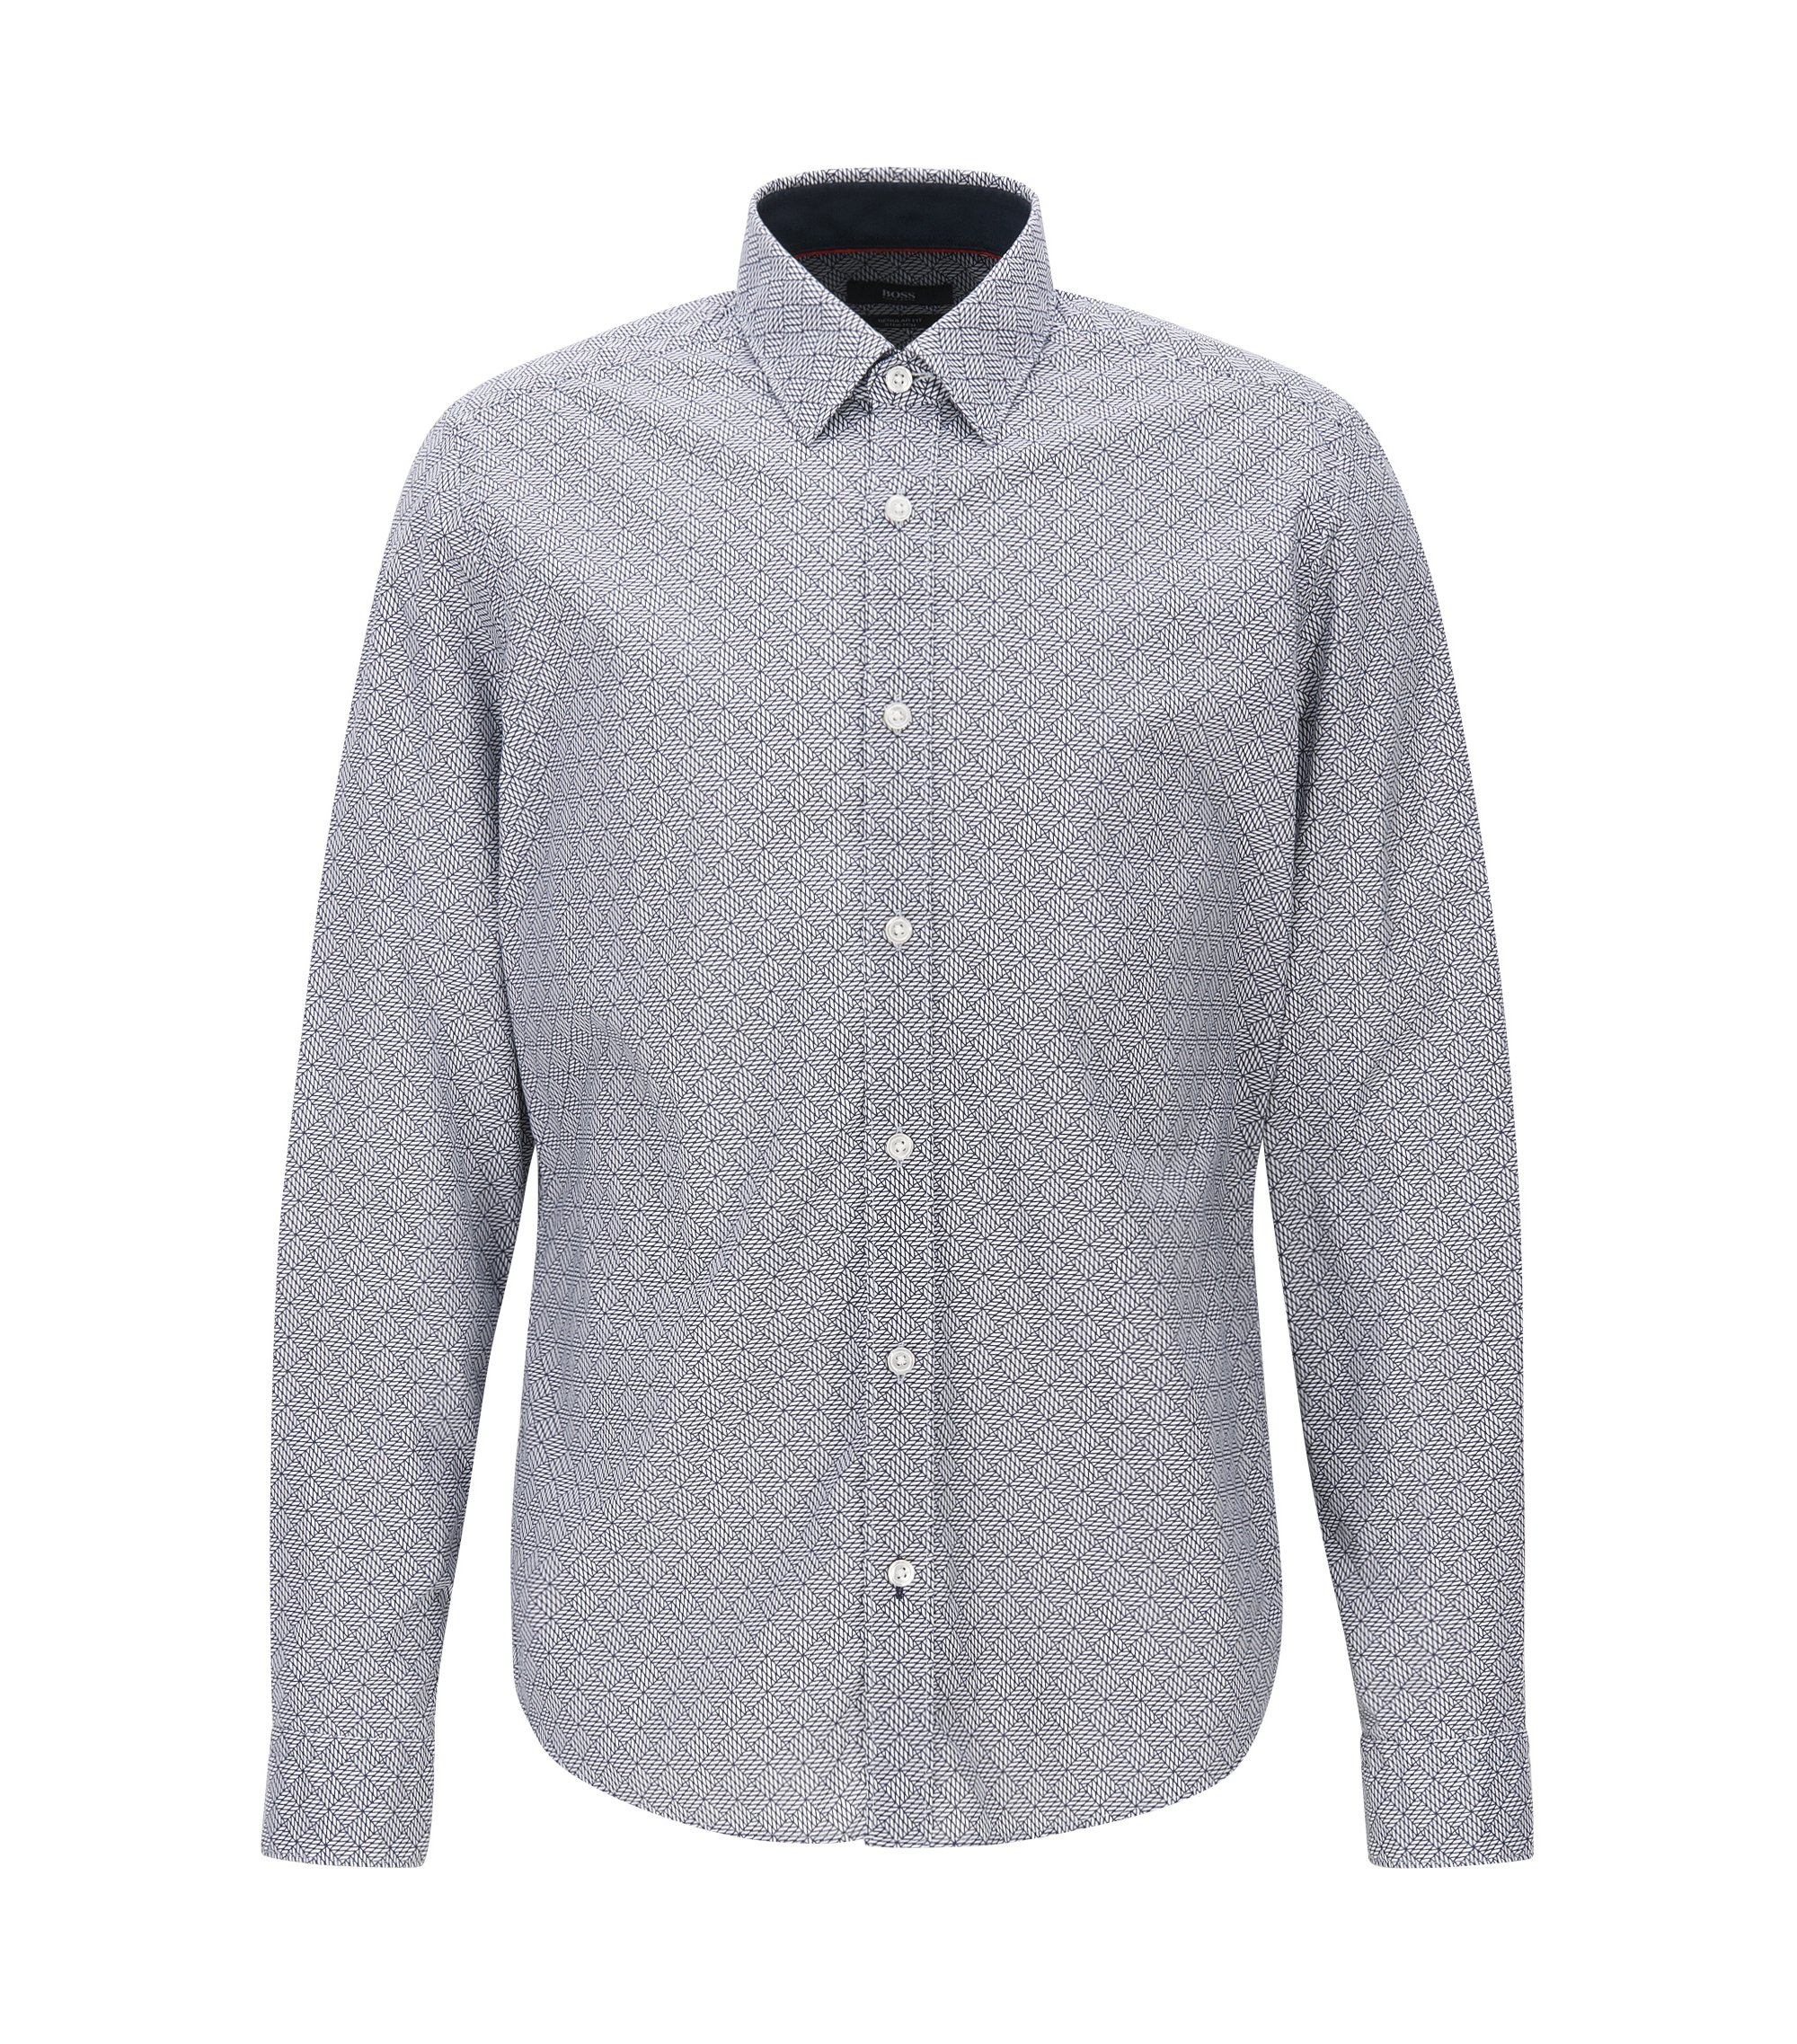 Regular-fit shirt in stretch poplin, Patterned